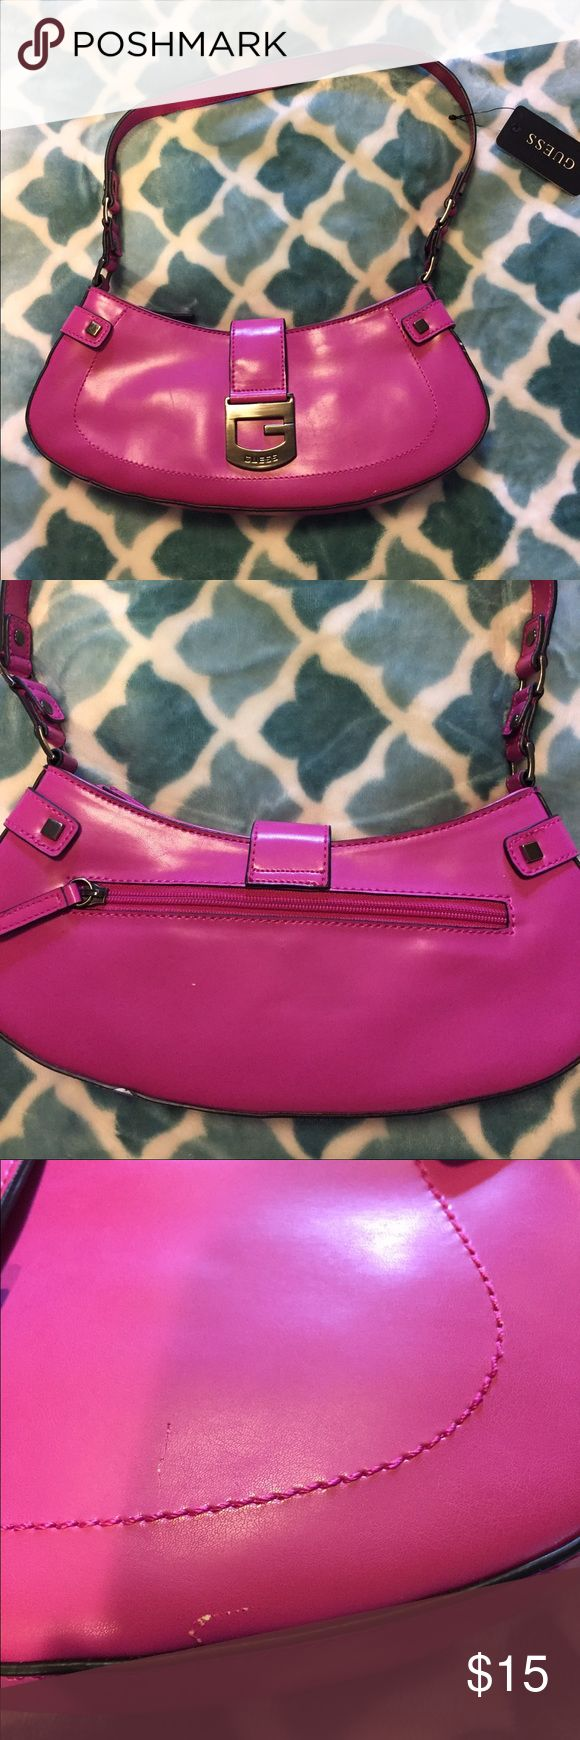 MUST GO! Magenta Guess bag MAKE AN OFFER! Small Guess bag...great magenta color...brand new with tag...some scratches but not too noticeable still a great bag Guess Bags Shoulder Bags